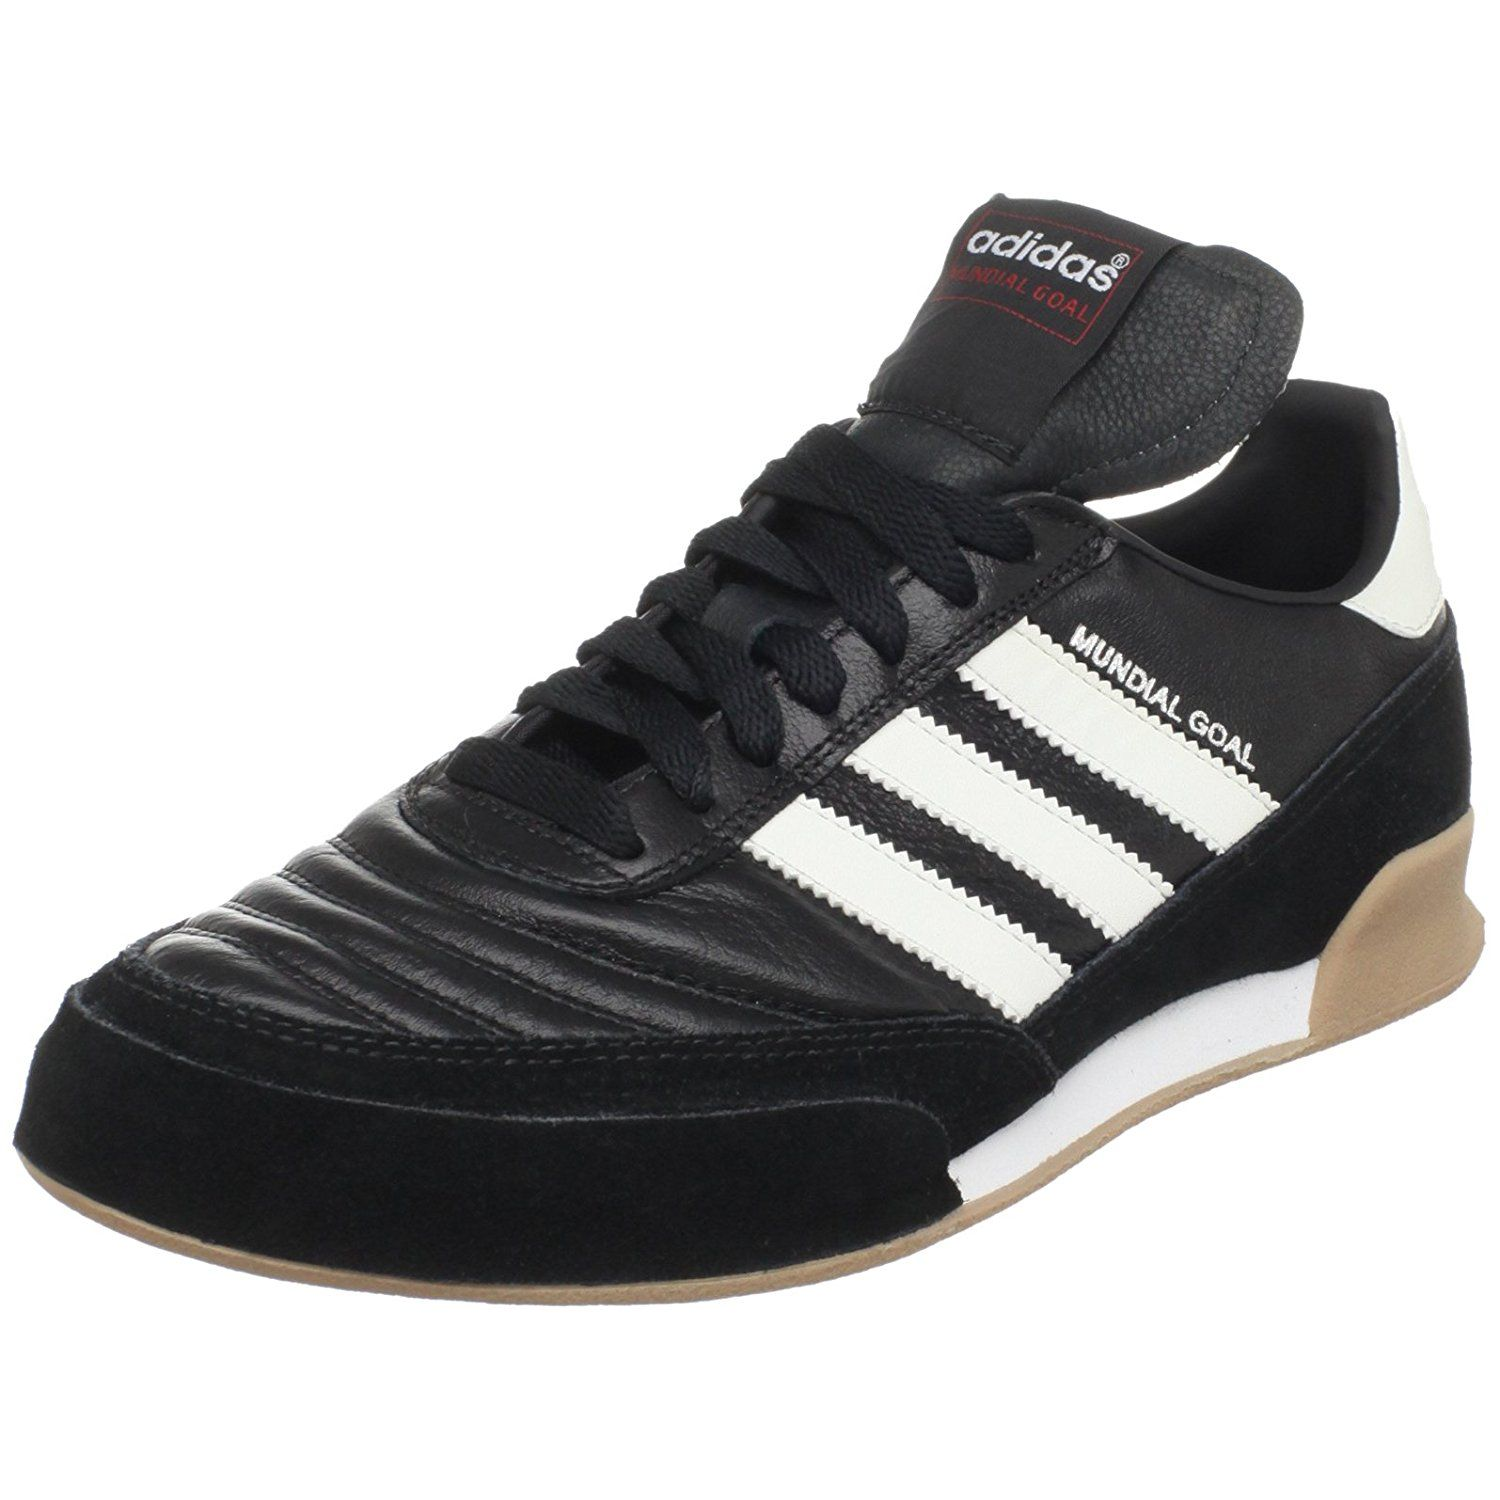 Adidas COPA MUNDIAL | Best soccer shoes